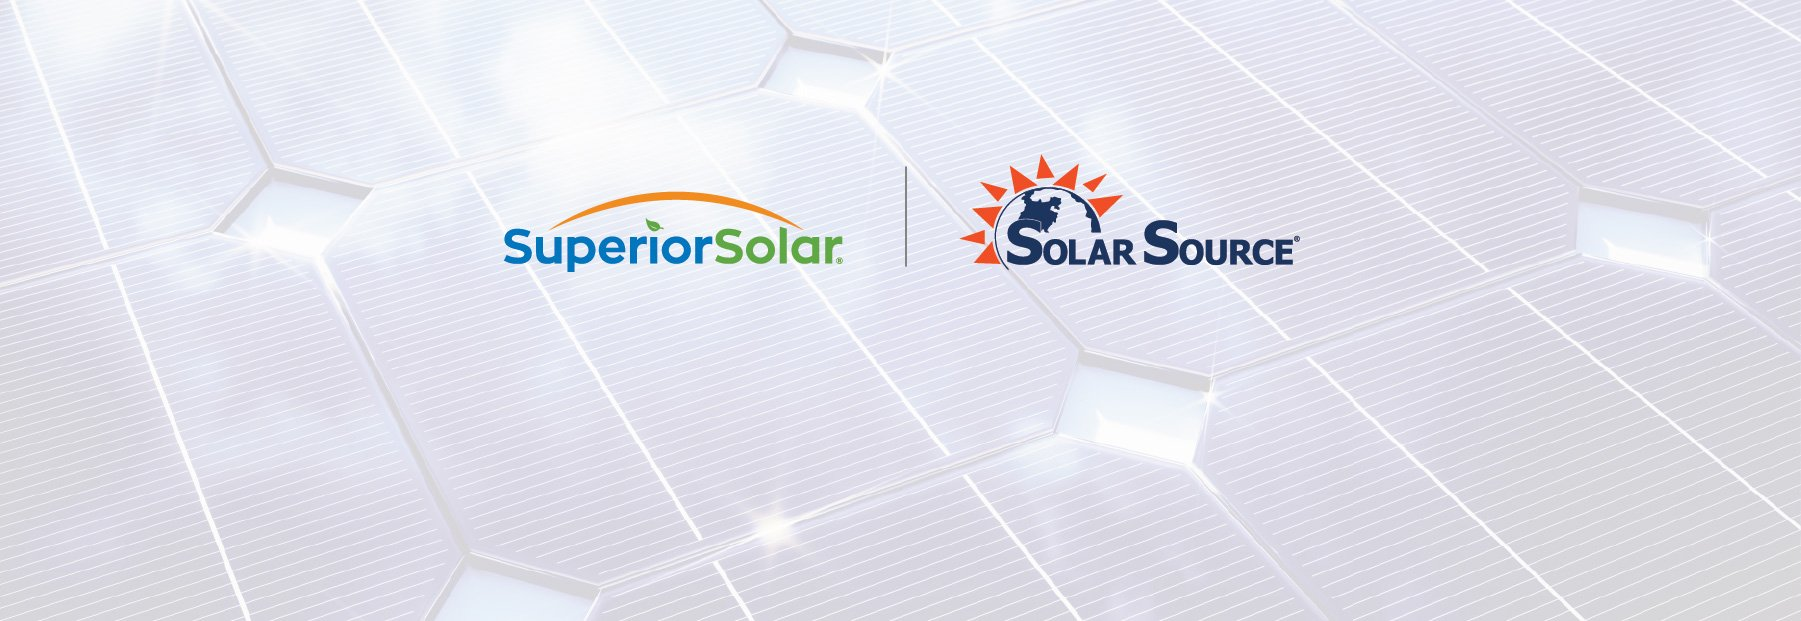 solar-source-pool-heating-panels-energy-central-florida